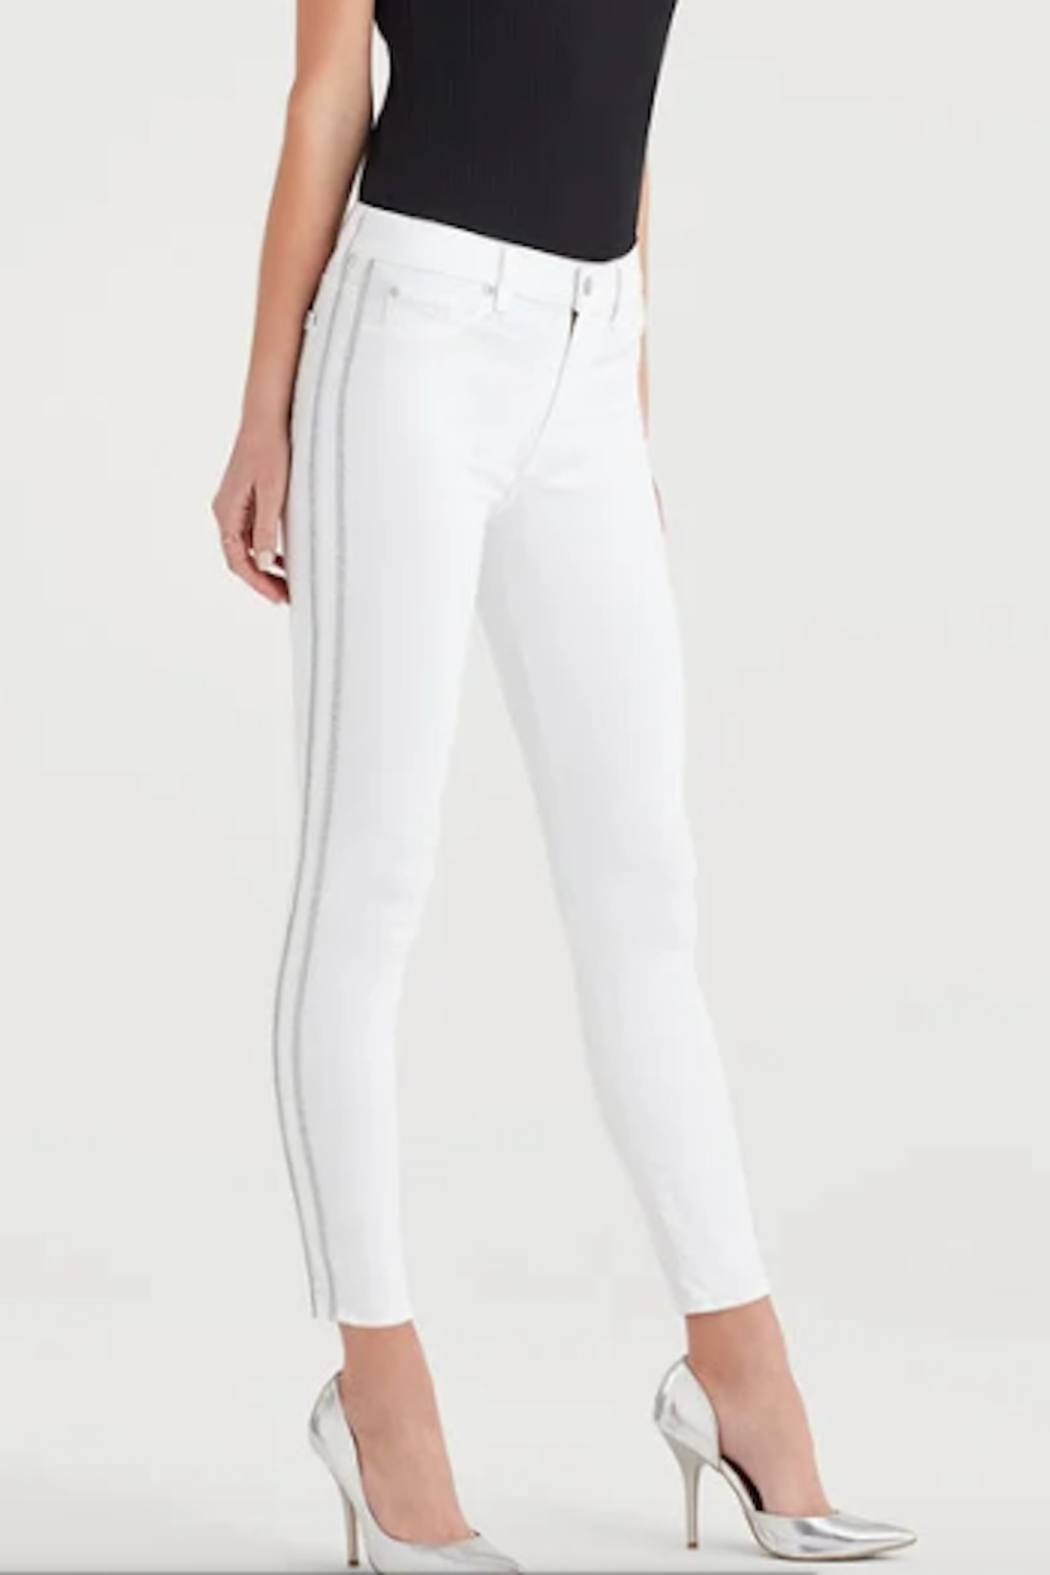 7 For all Mankind High Waist Winter White Fashion Skinny Jean - Main Image